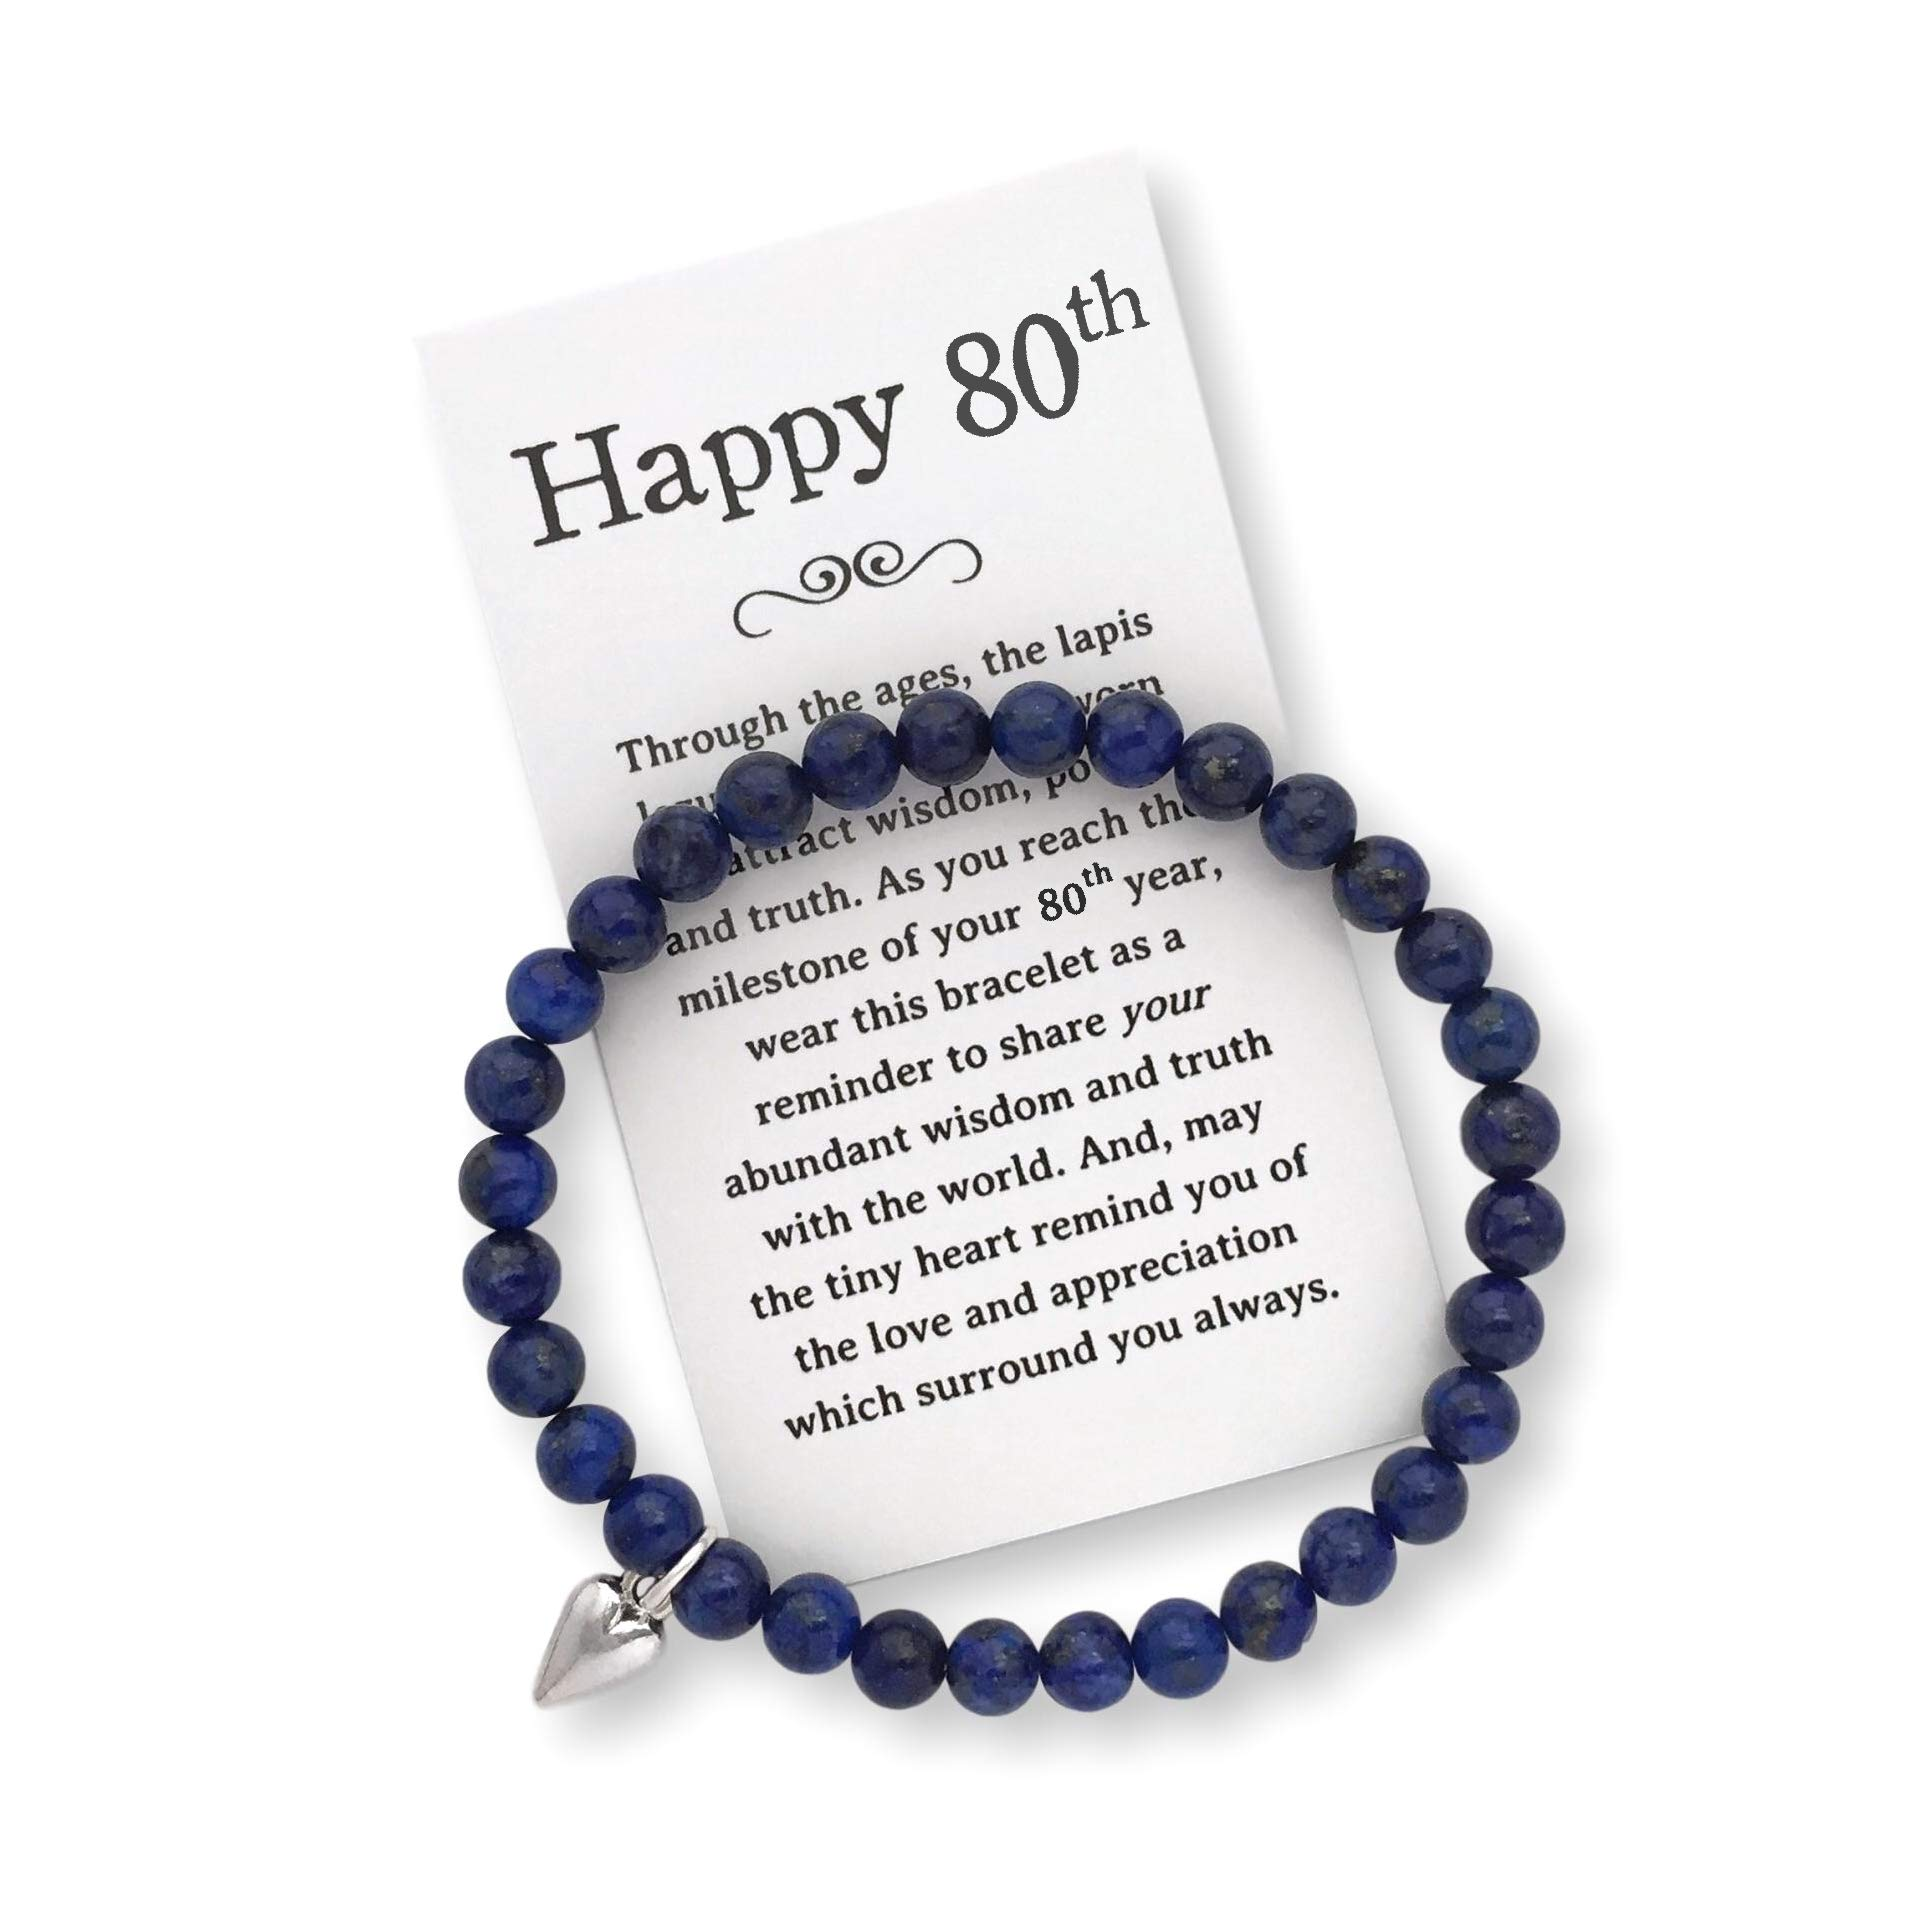 80th Birthday Gift for Women - 80th Jewelry Bracelet with Box, Bow and Card by Birthday Jewelry